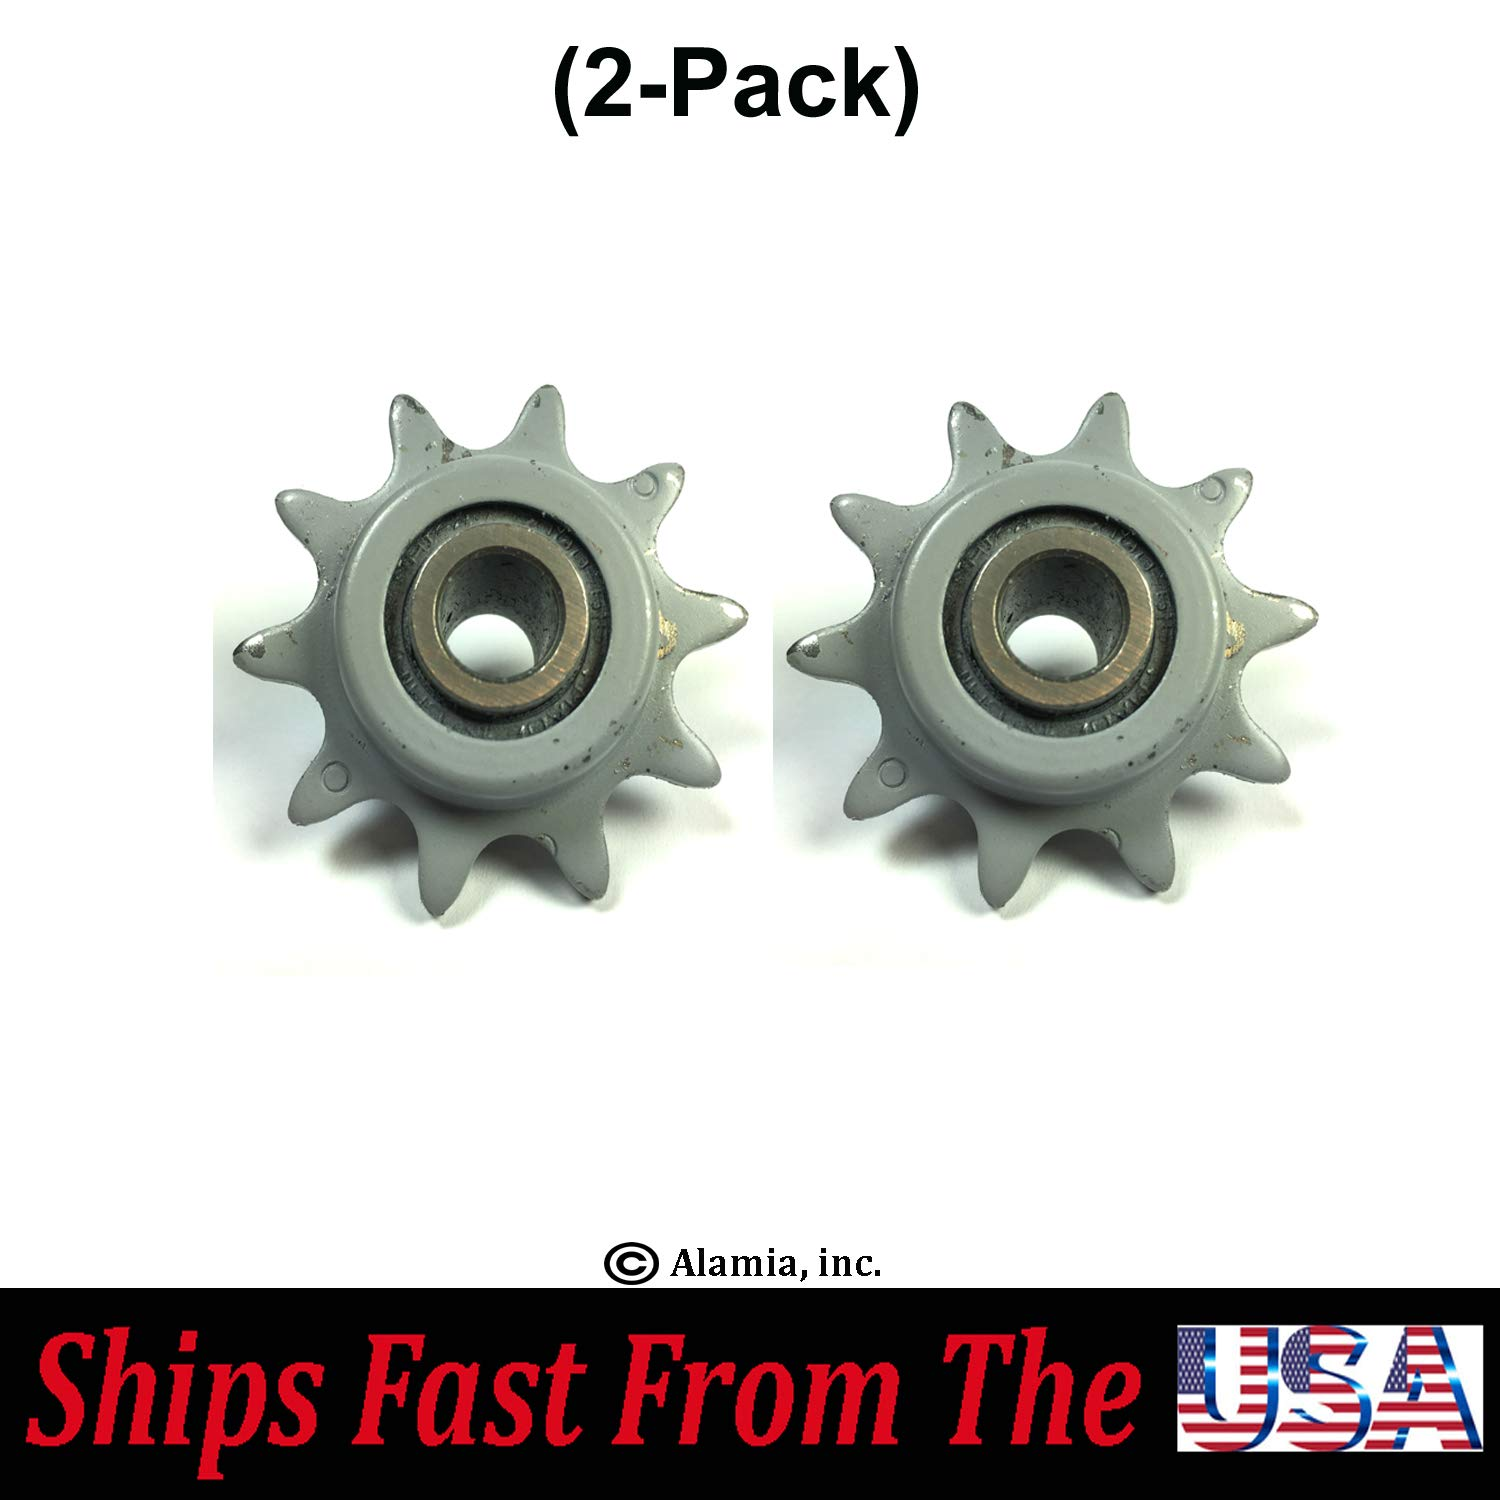 (2-Pack) New Ryan Aerator Parts, 548960 Idler Sprocket Fits All Ryan LA-IV & LA-V Aerators by .Alamia